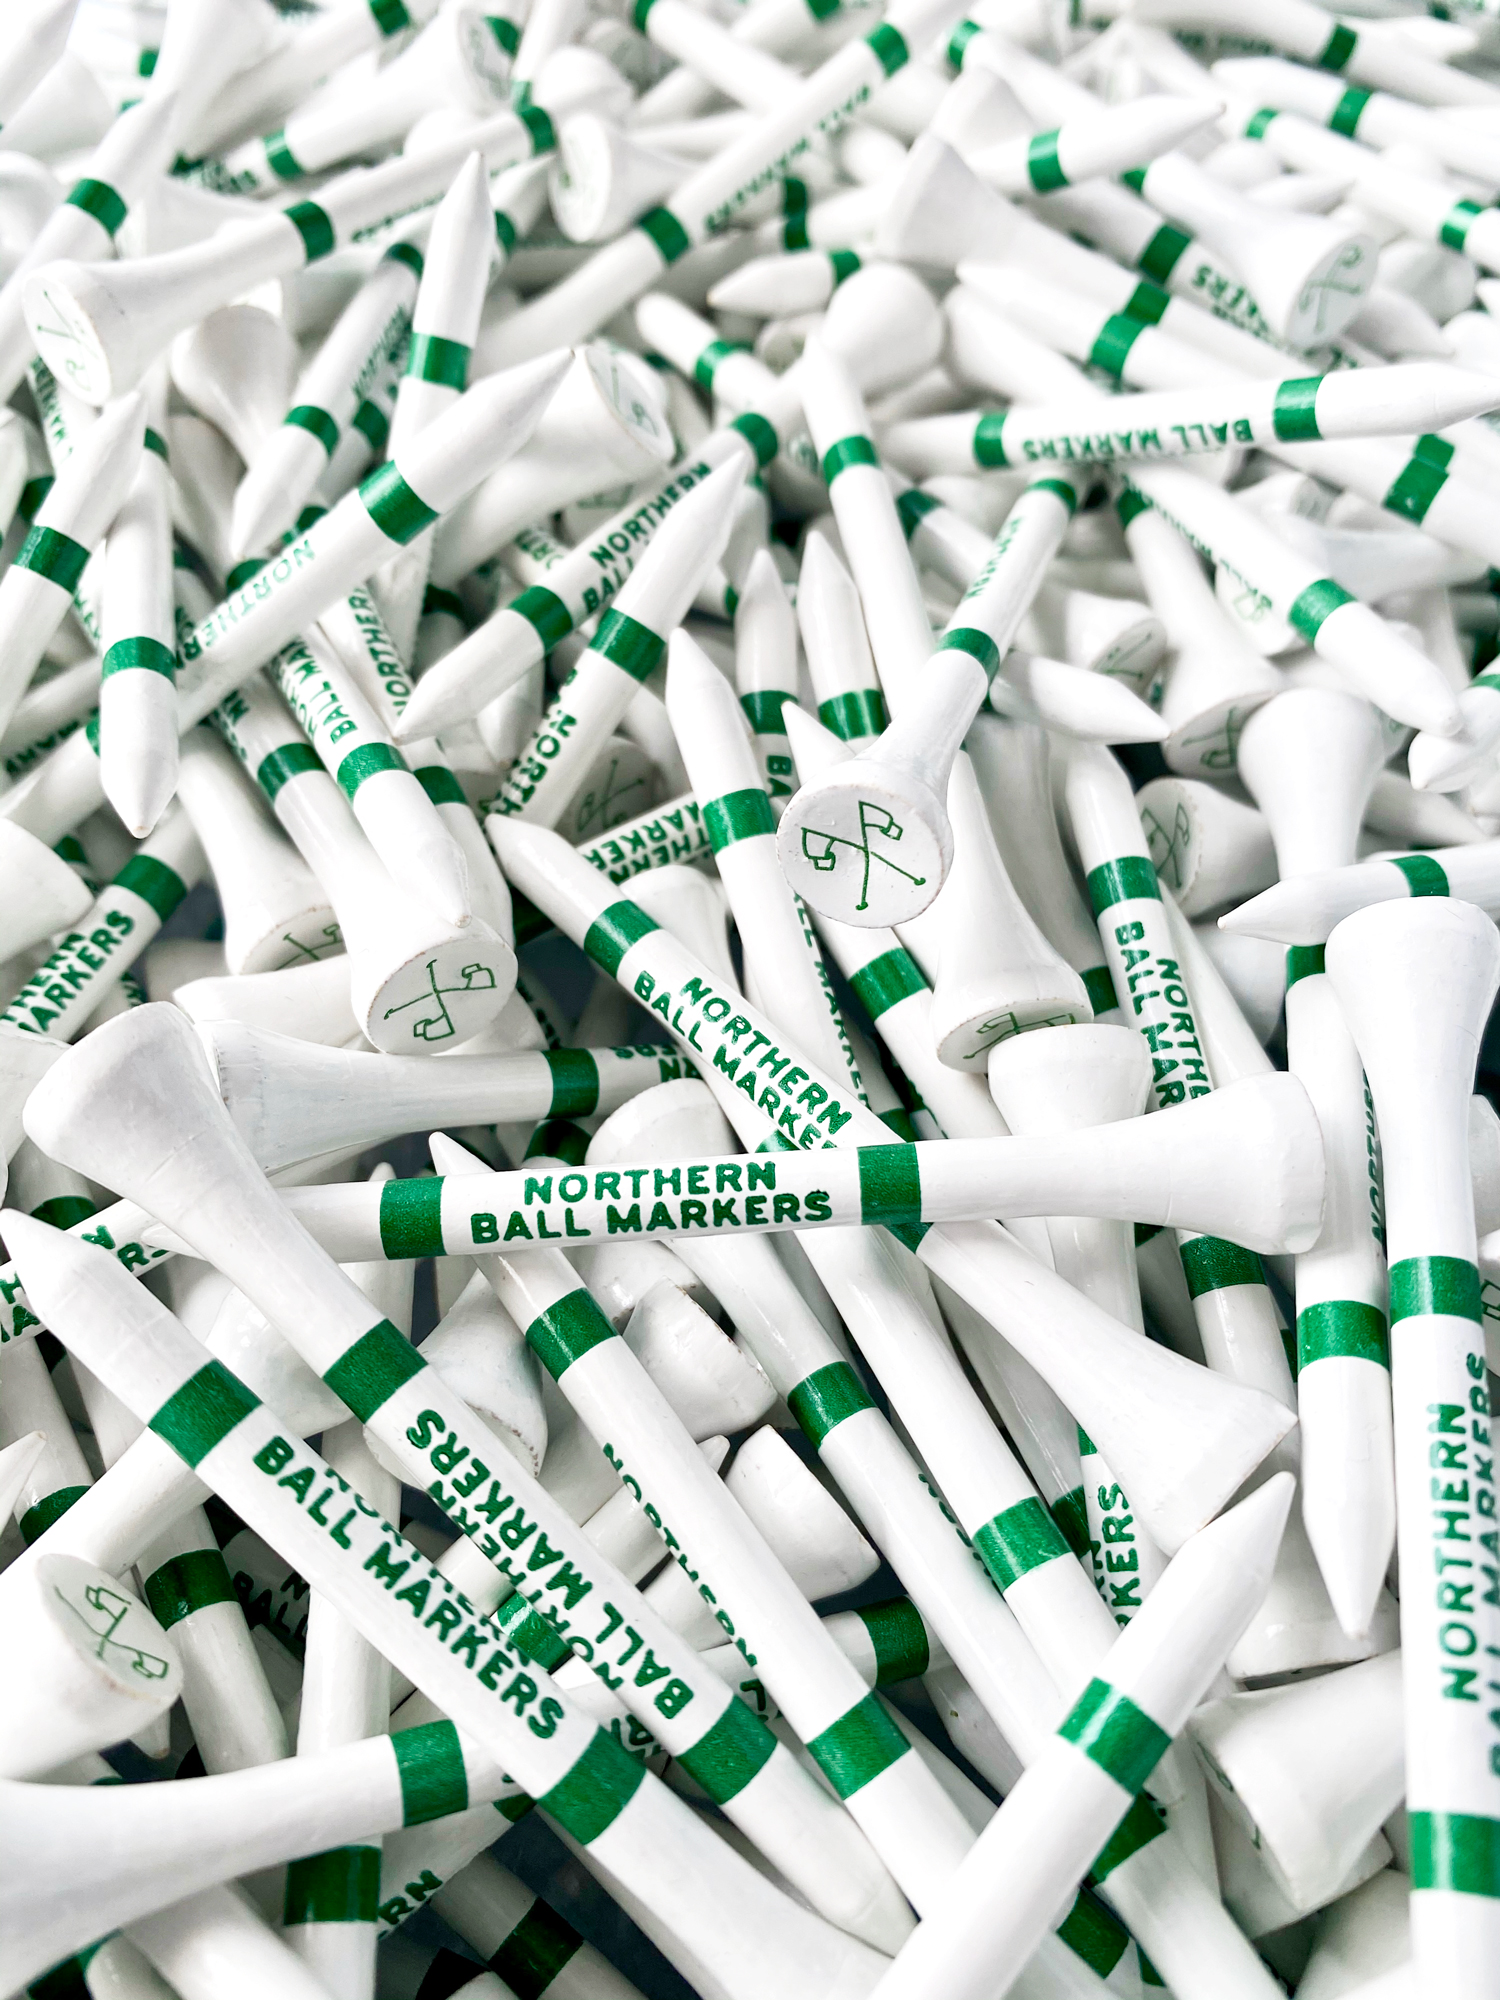 Northern Ball Markers branded golf tees